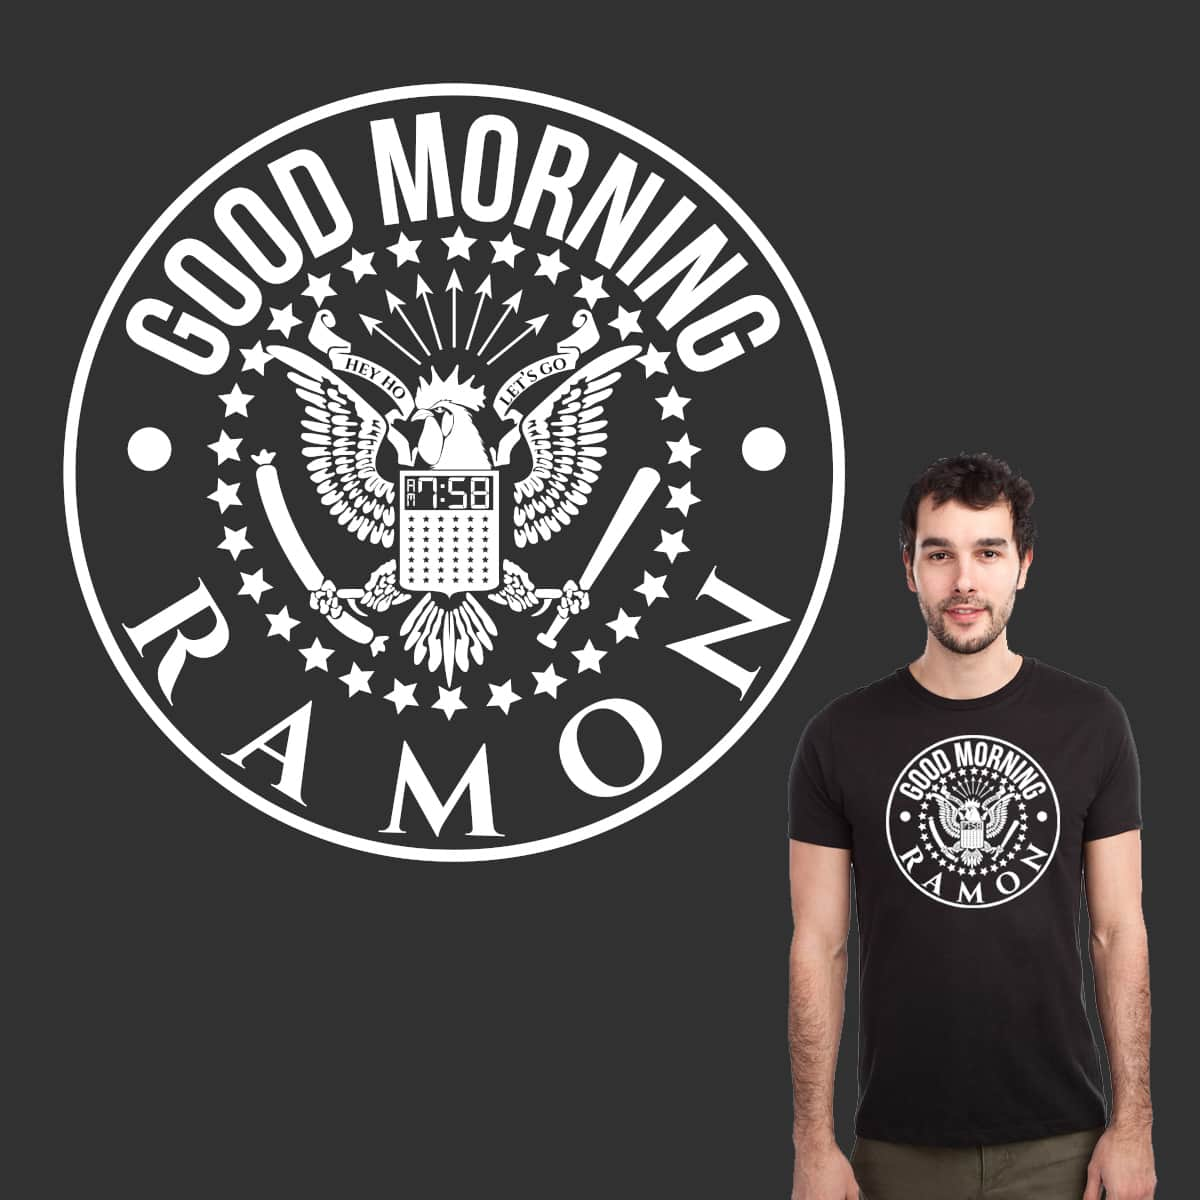 Good Morning Ramon by javierv007 on Threadless